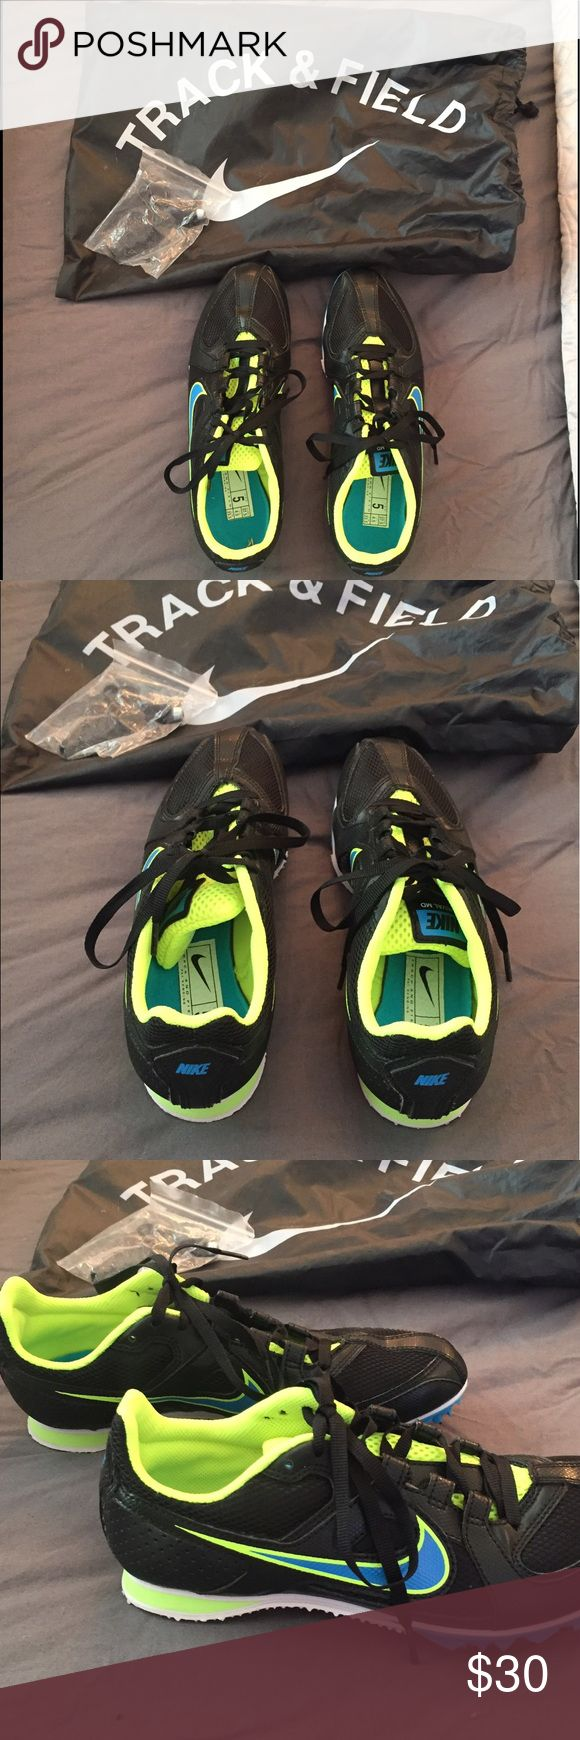 NIKE Rival Md track and field spikes PERFECT NEVER WORN Nike track and field spikes! Comes with spike changer and in storage bag. Black base color with neon yellow and blue accent colors. Multi use spikes- for distance or sprinting and can be manipulated by changing the spikes for your particular use! Nike Shoes Athletic Shoes